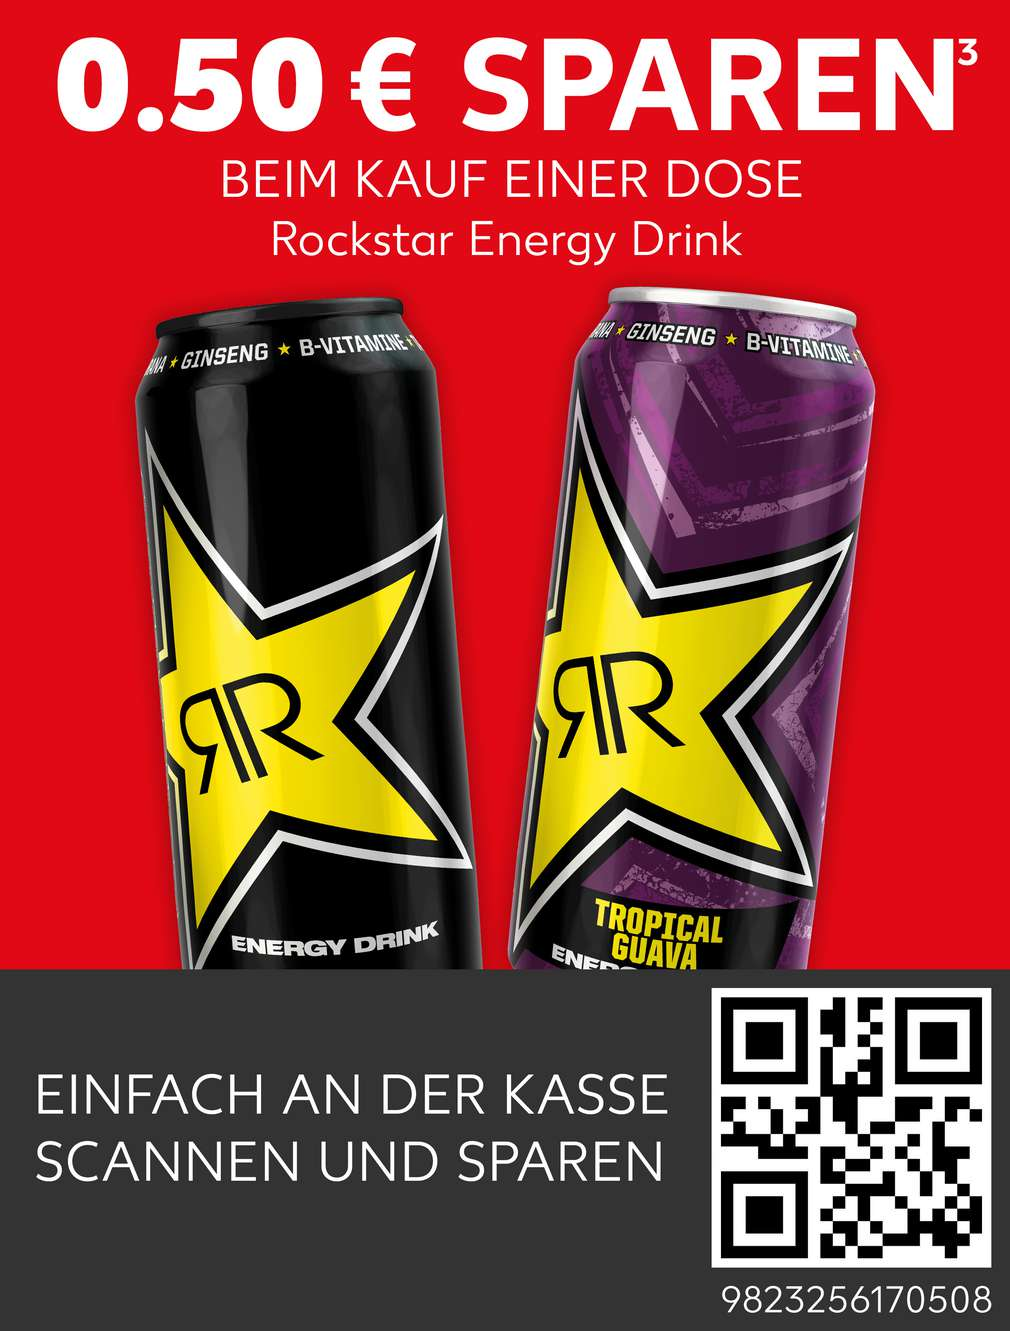 Coupon Rockstar Energy Drink